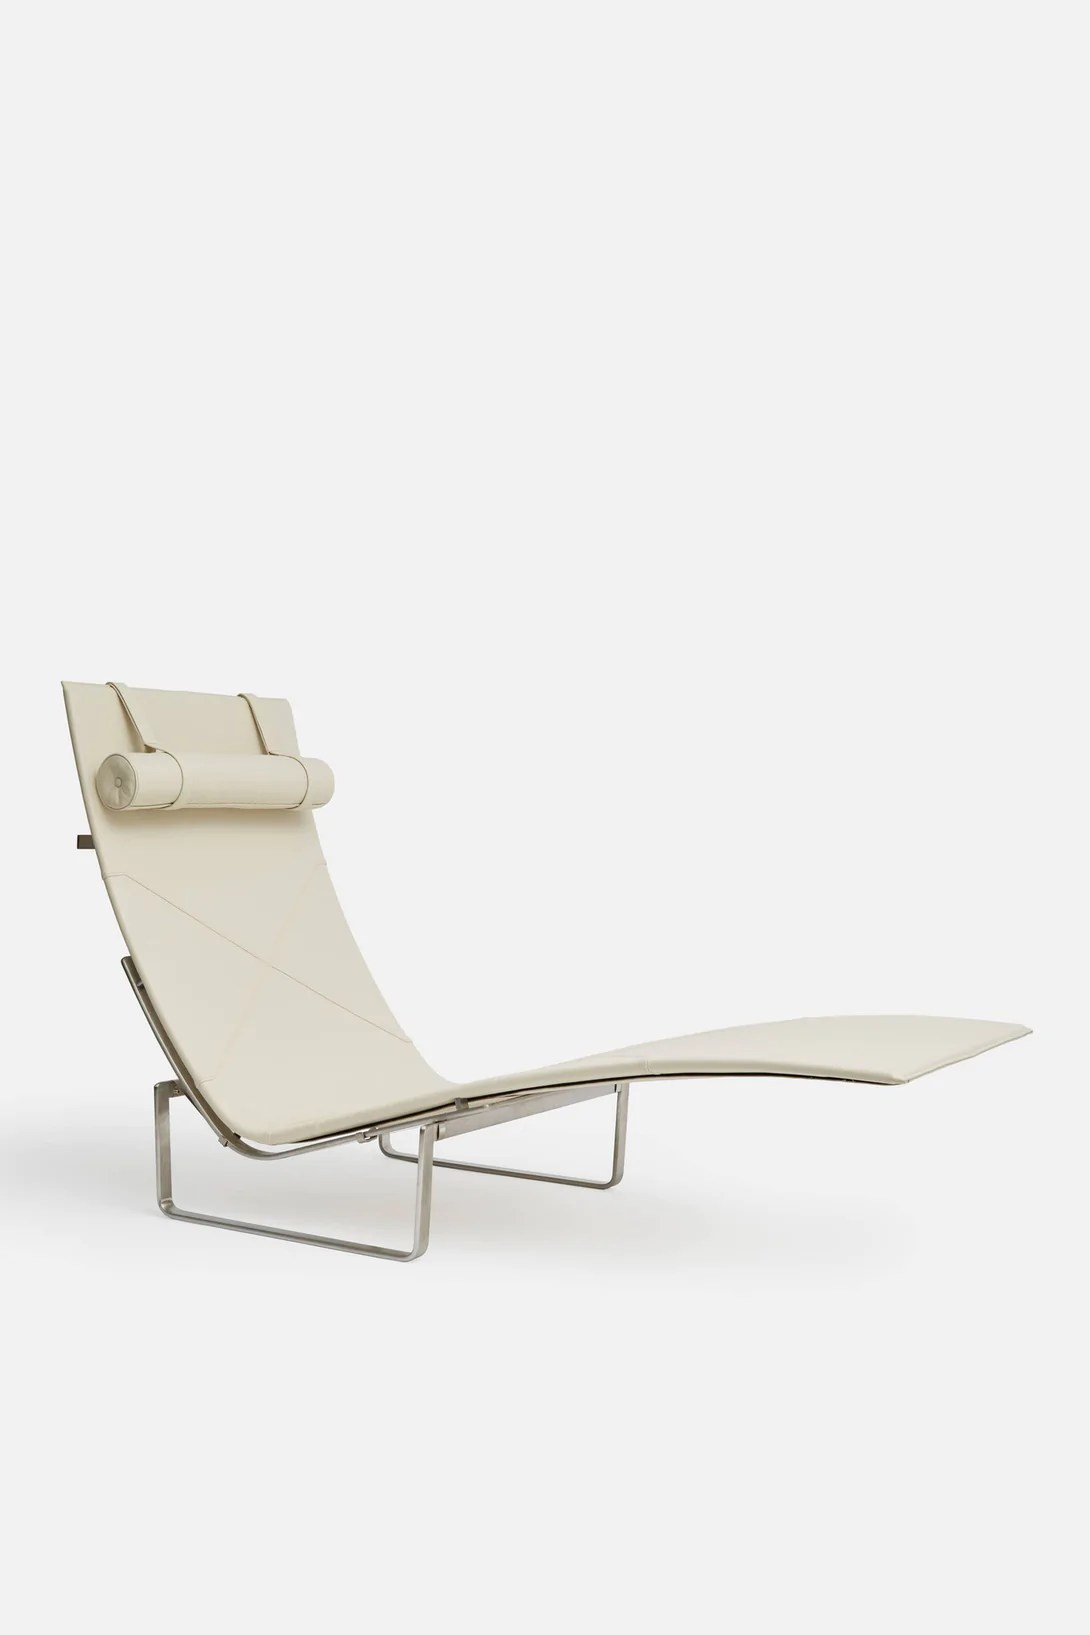 white chaise chair pool floating lounge pk24 leather  the line